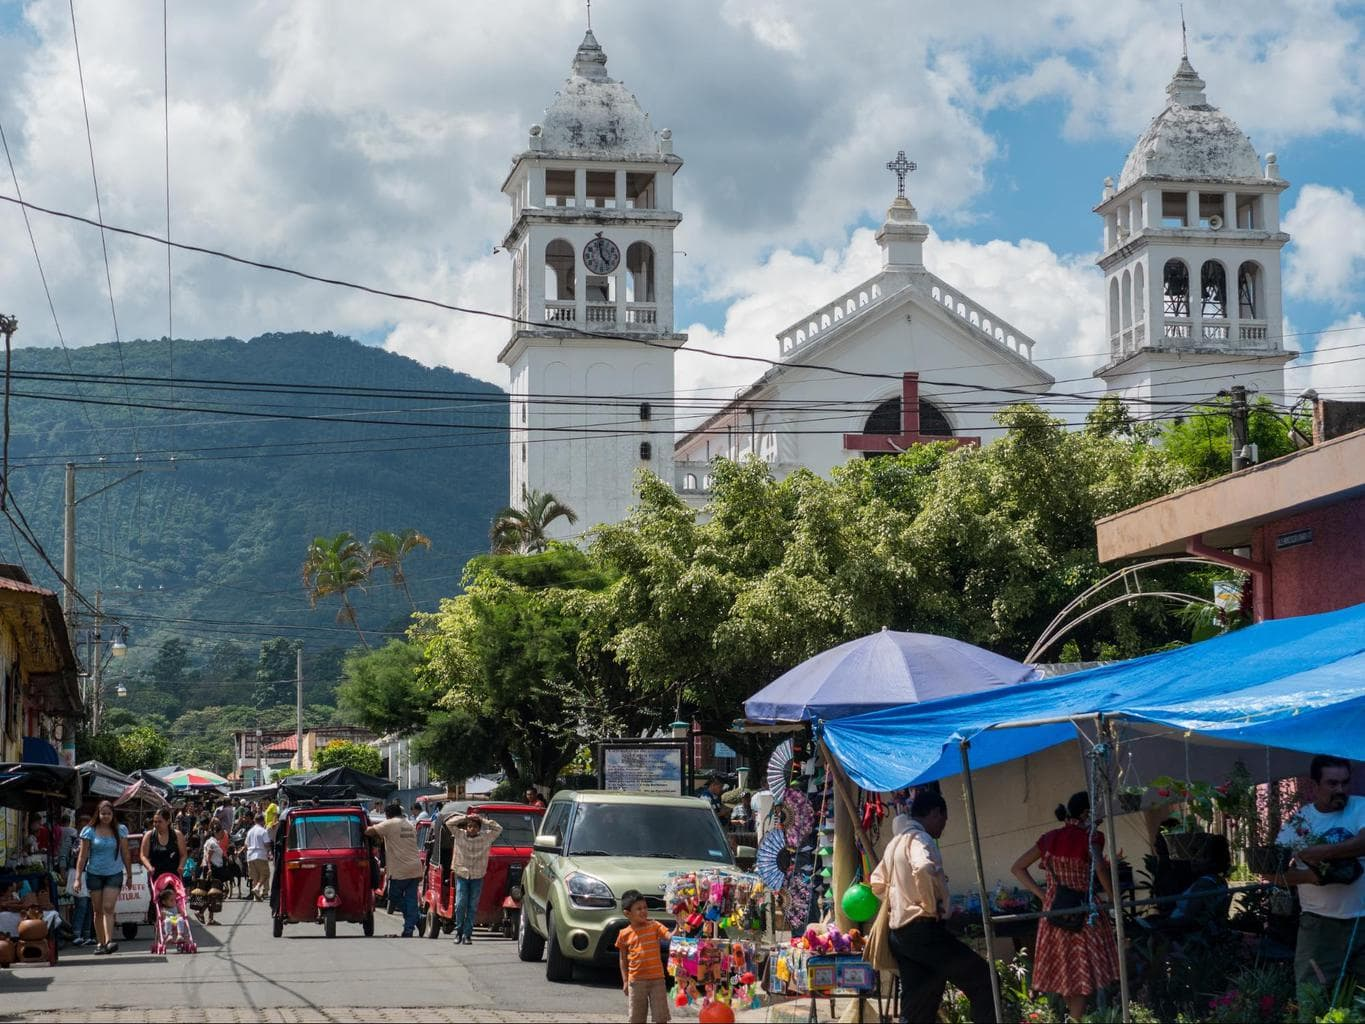 Is El Salvador safe to visit for tourists and travelers?